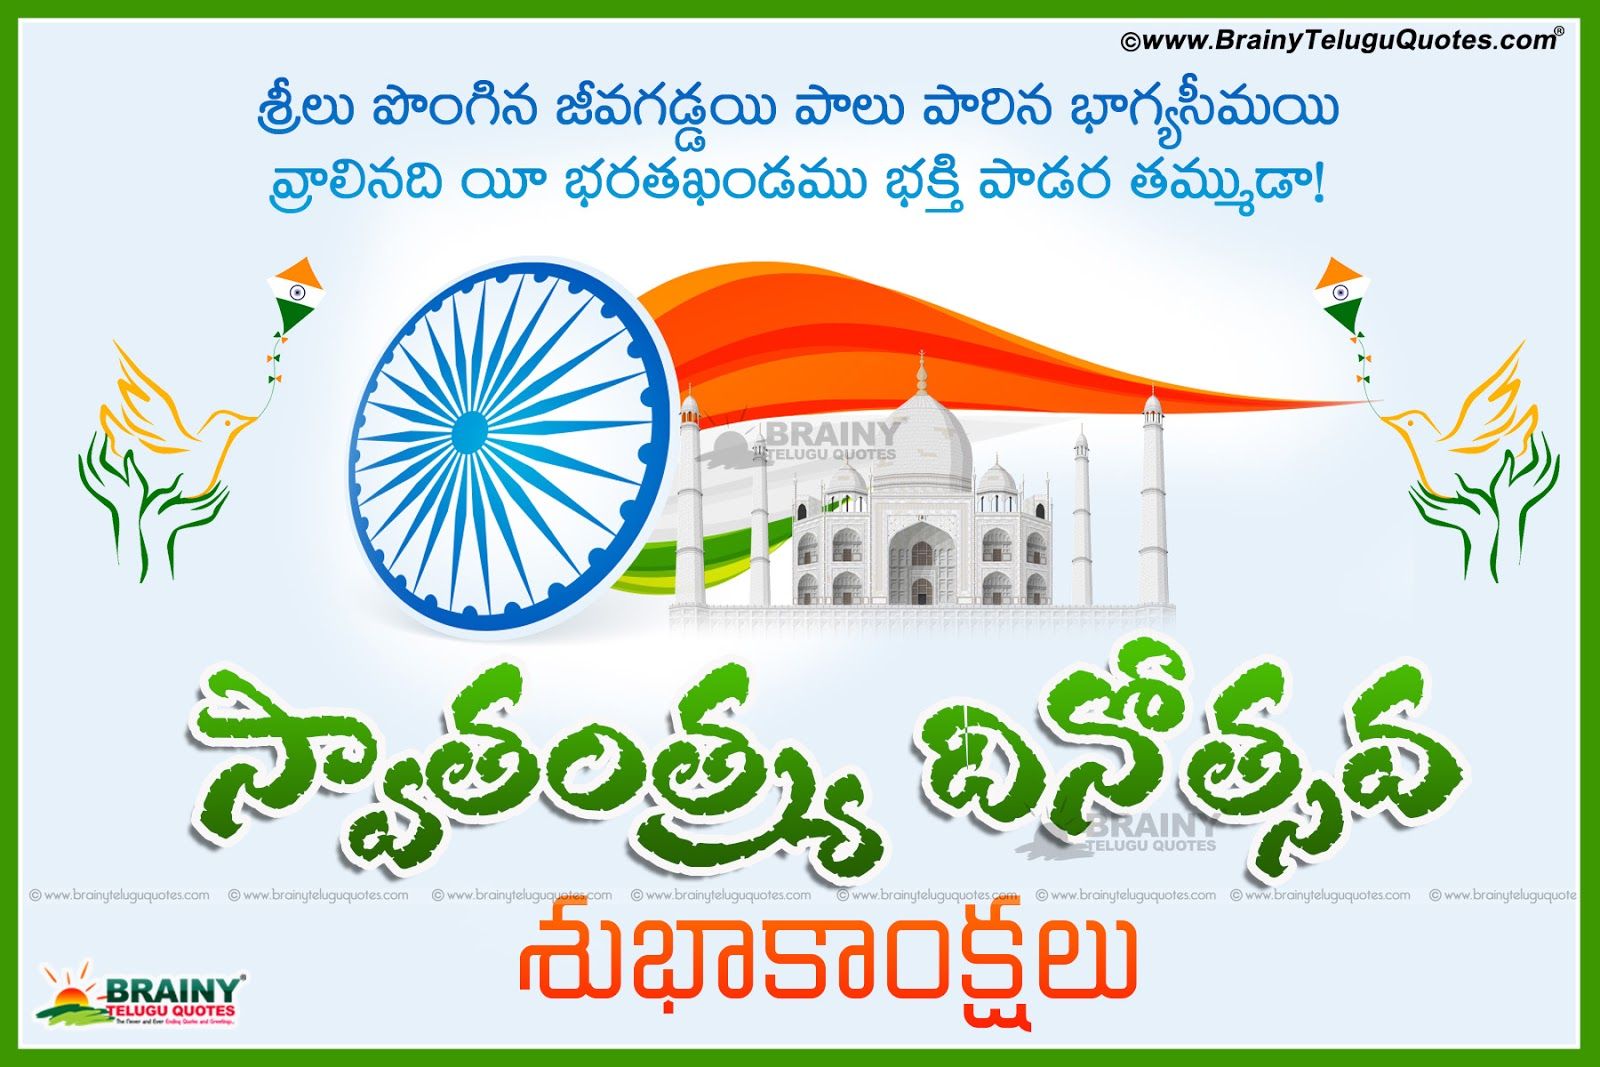 All time best latest independence day wishes quotes greetings in independence day telugu songs independence day telugu greetings independence day telugu wishes vector telugu independence day kristyandbryce Gallery